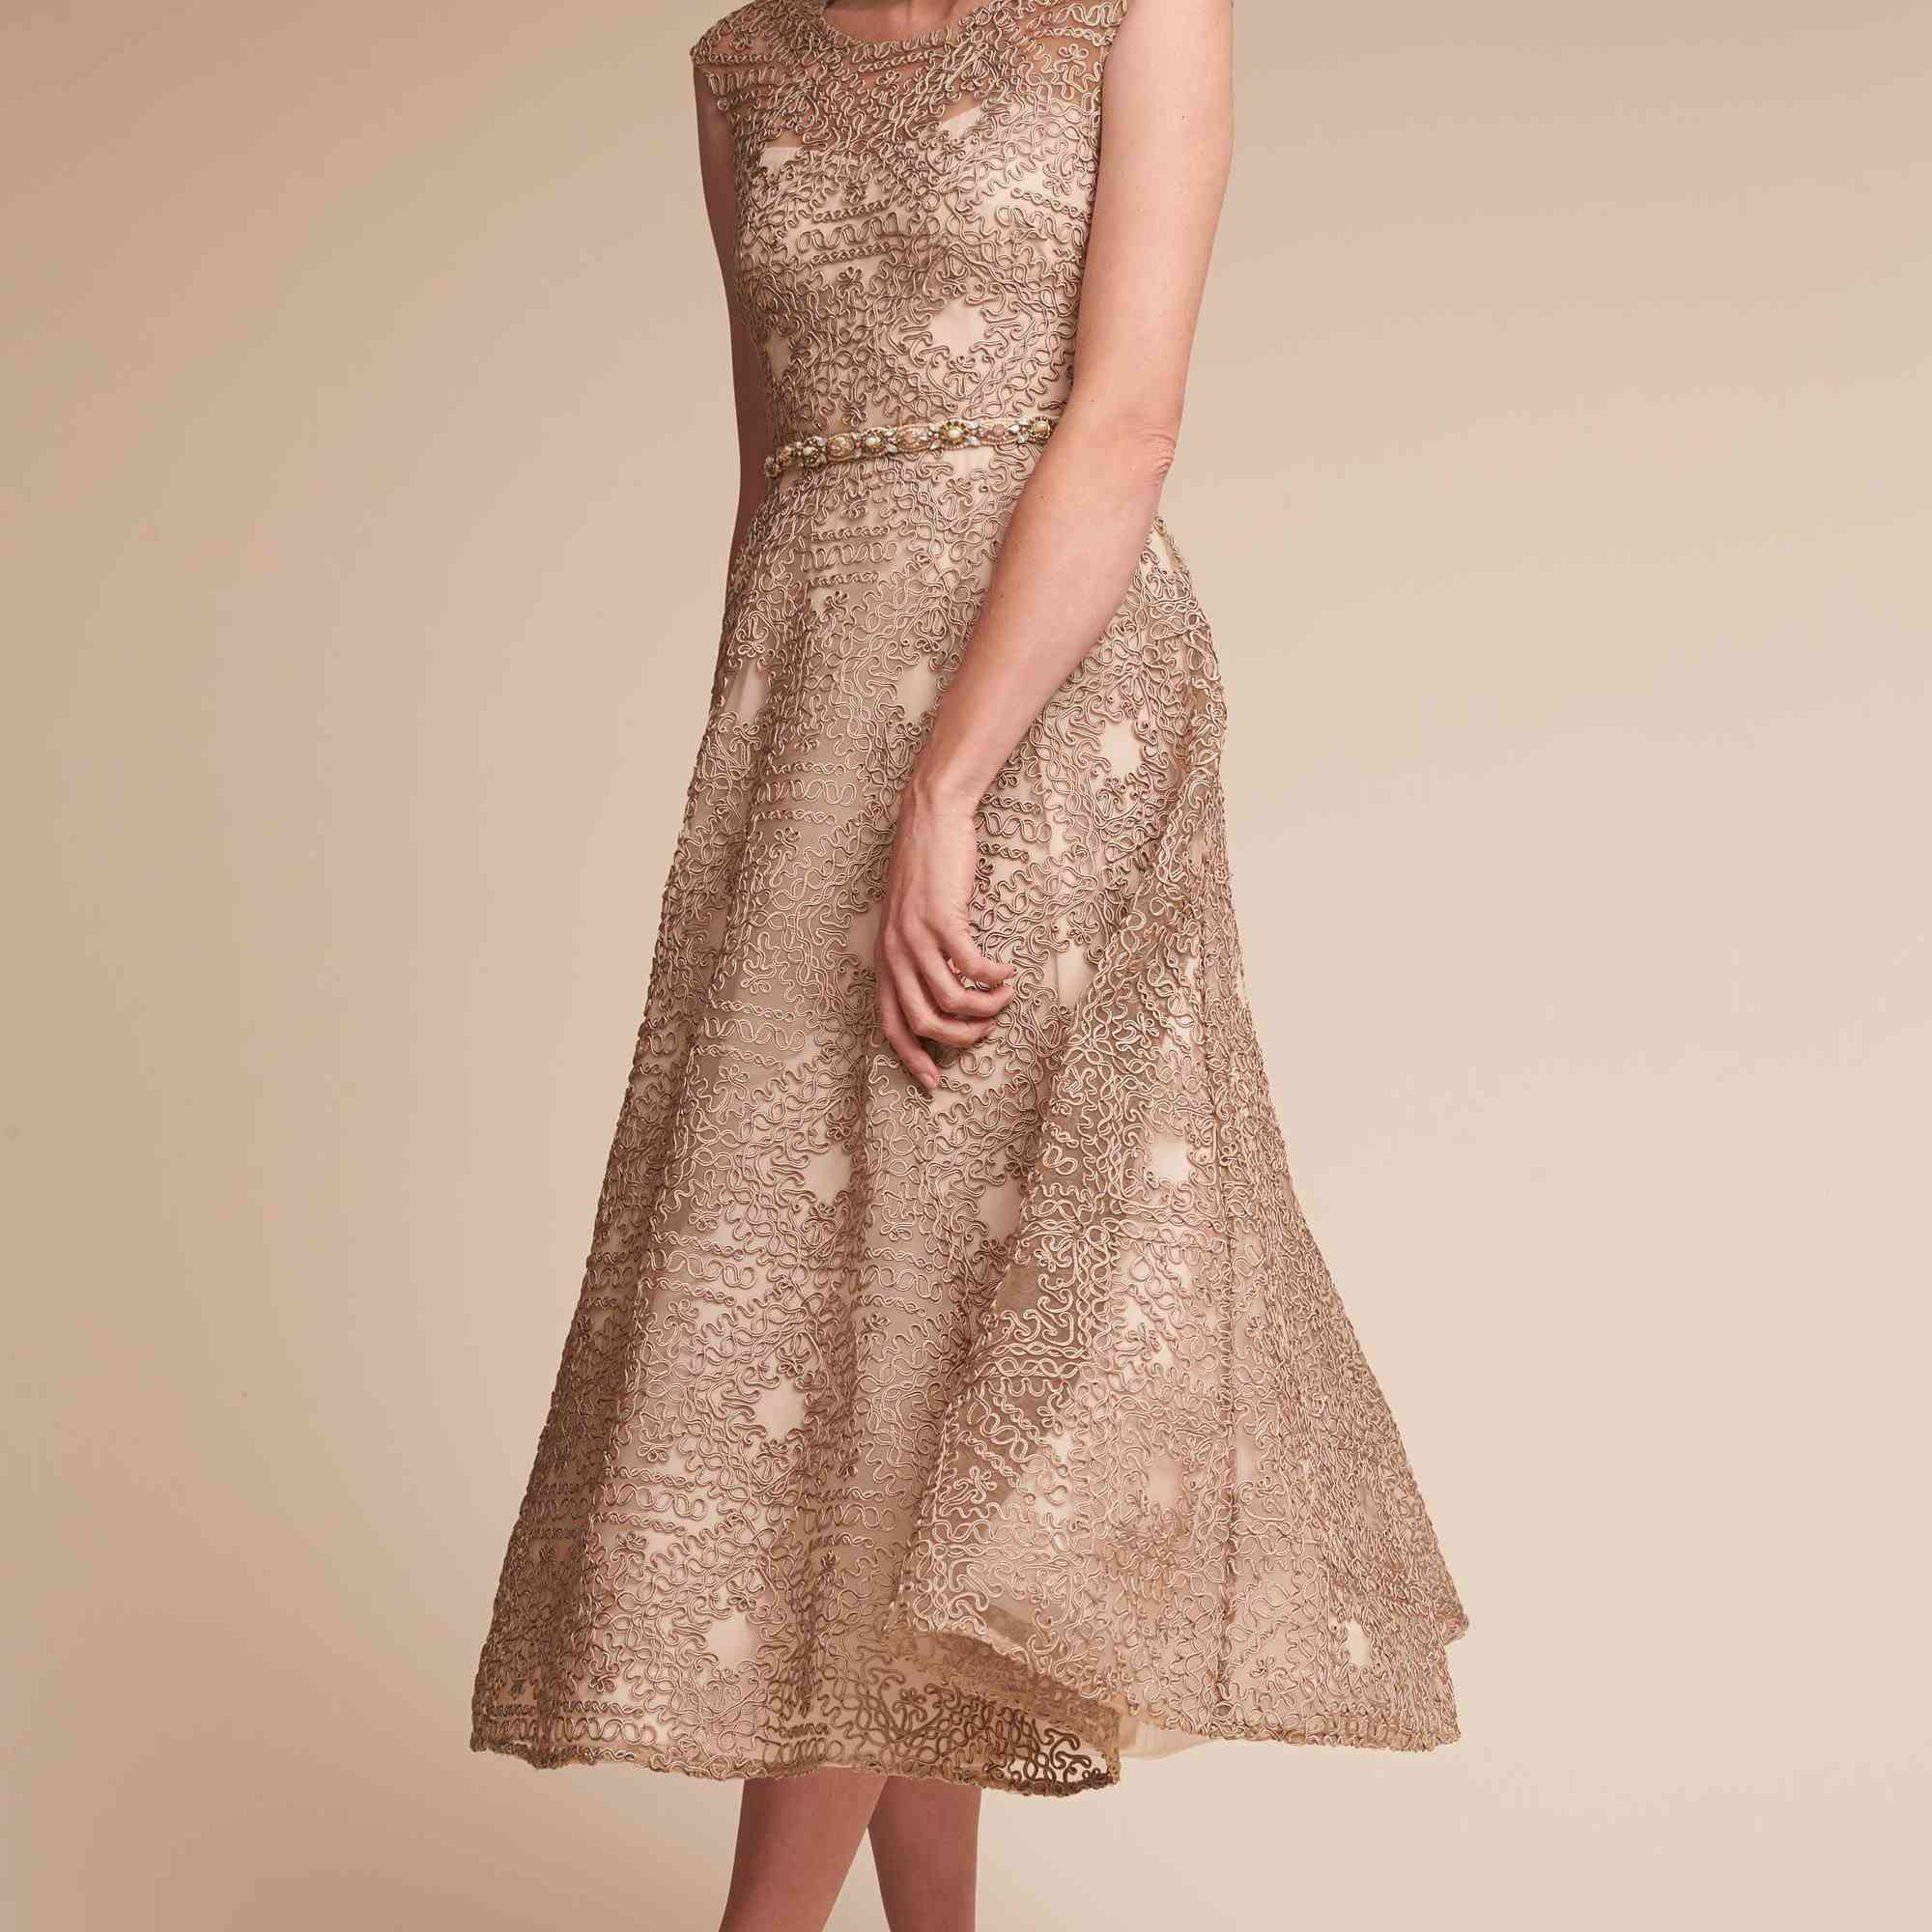 Gallery Plus Size Mother Of The Groom Dresses: 24 Mother Of The Groom Tea-Length Dresses For Every Style